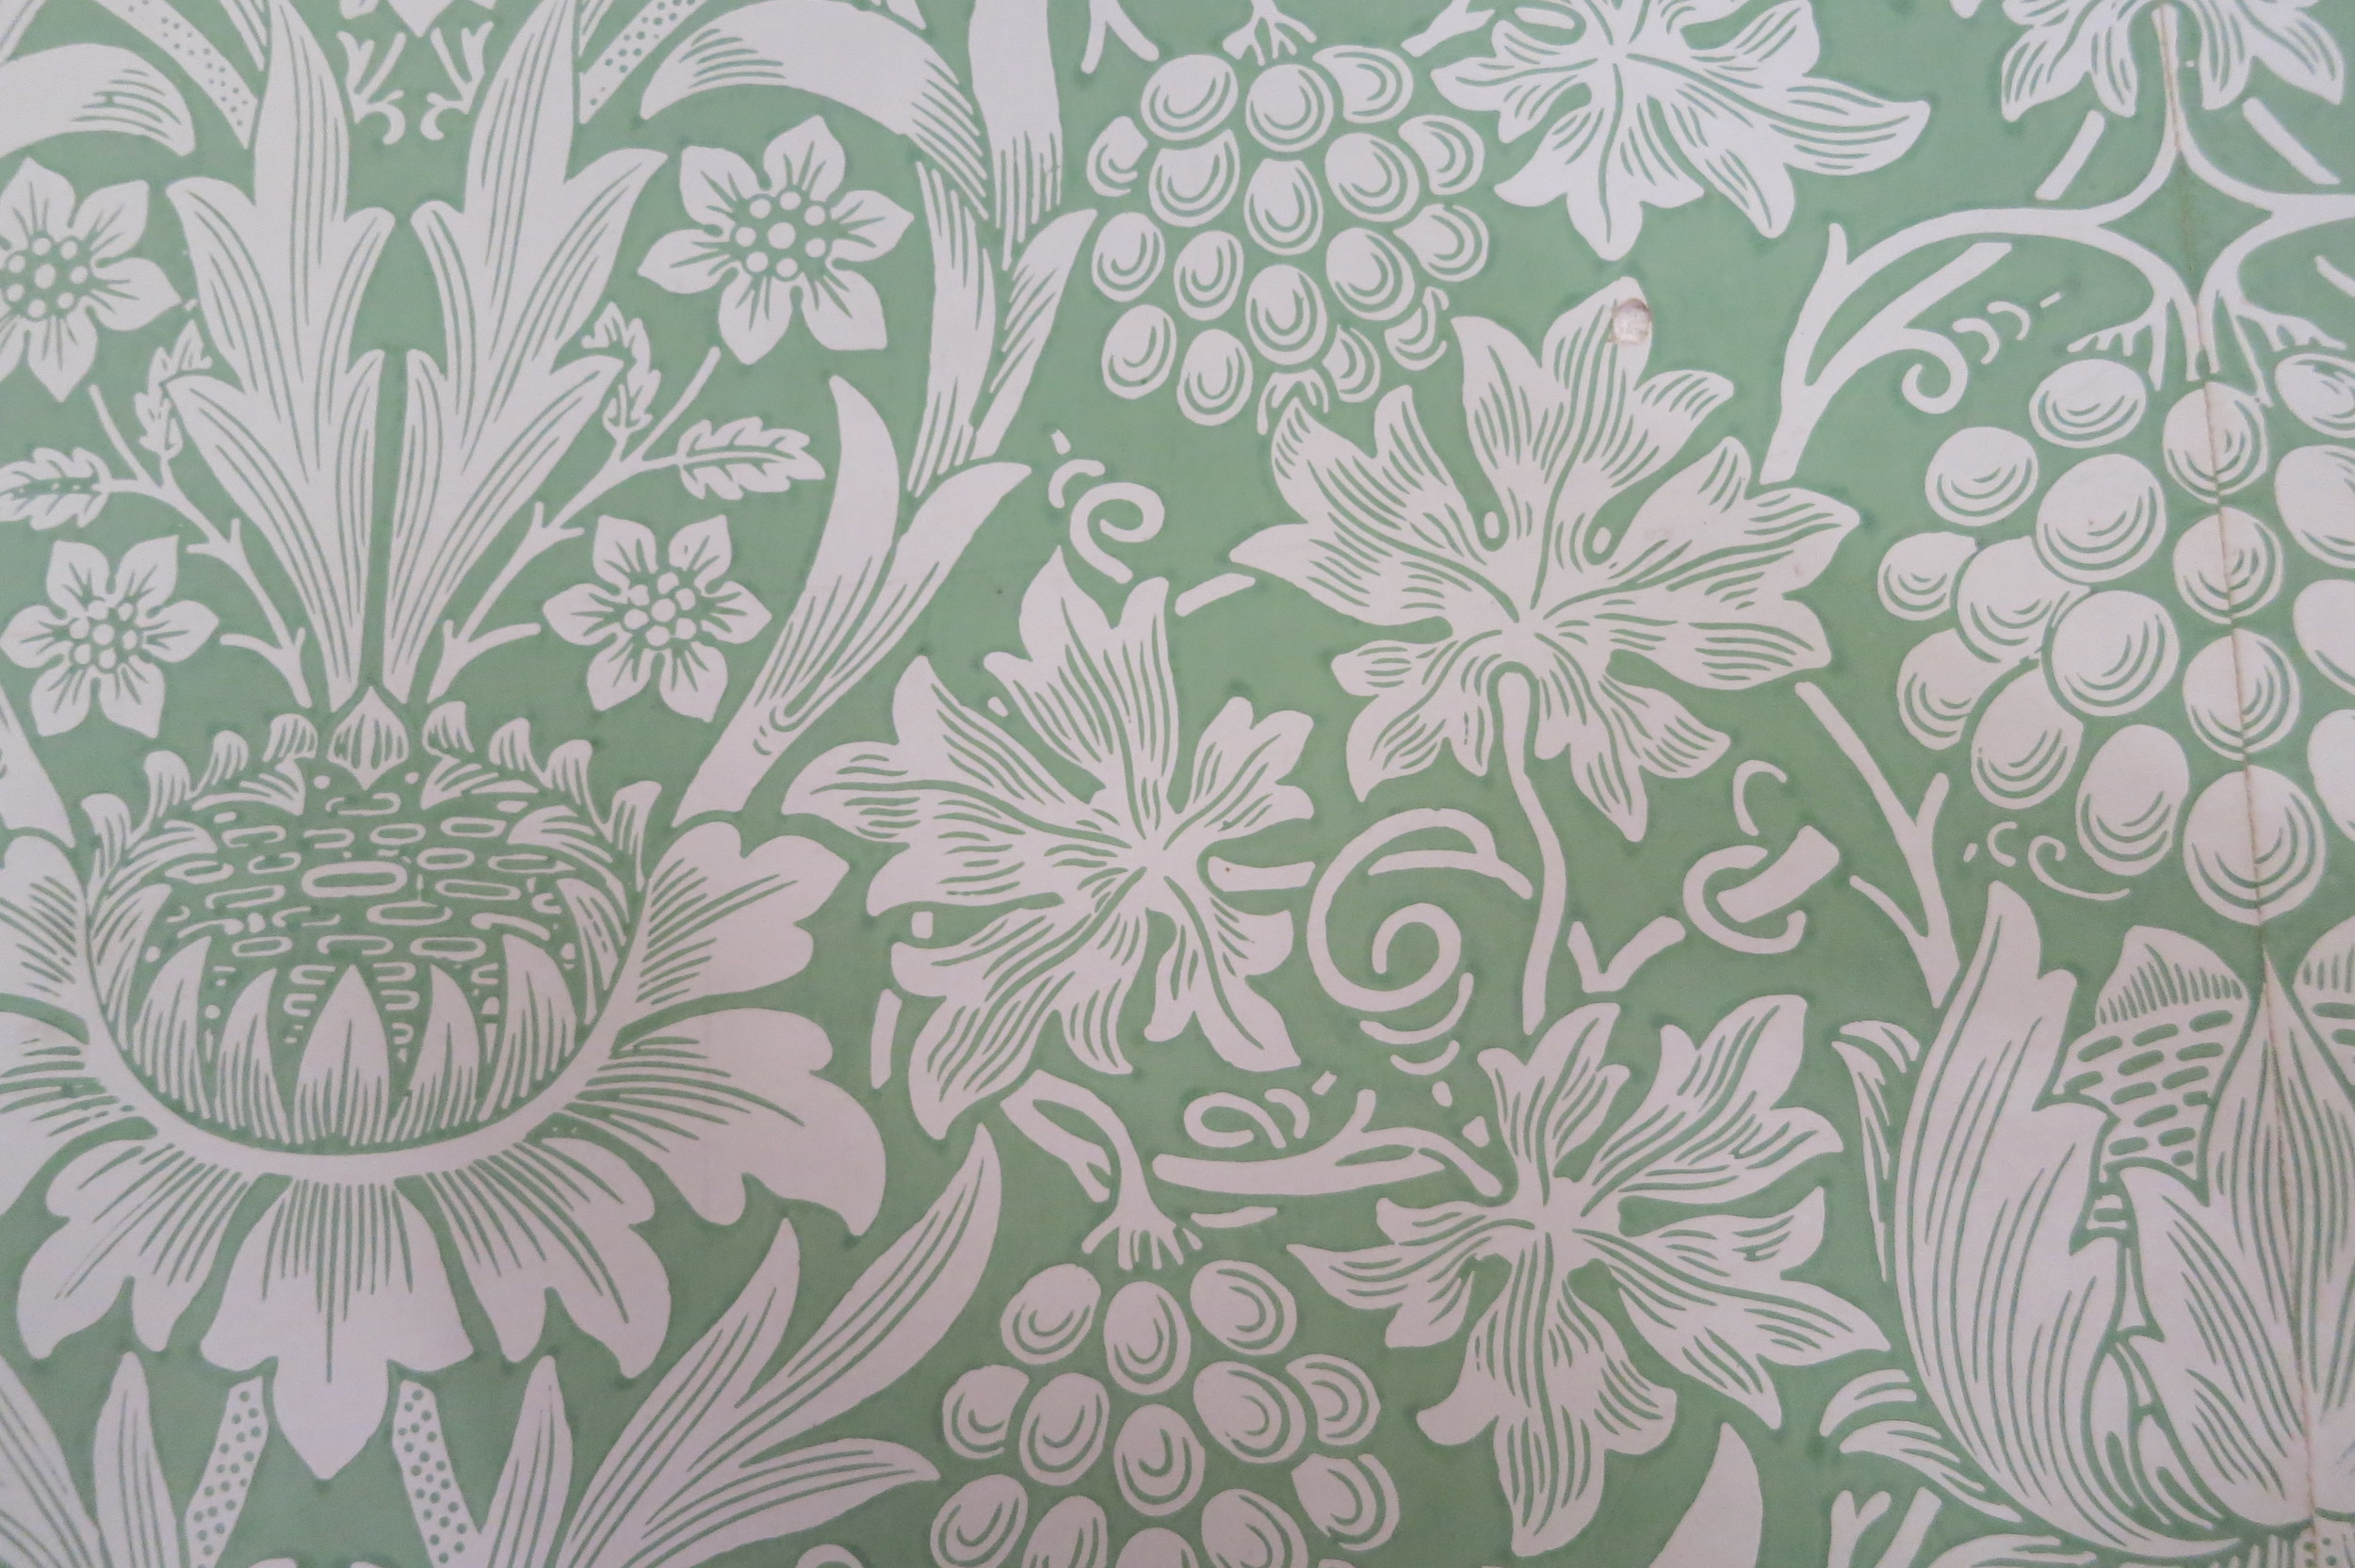 William Morris wallpaper in his 'Red House'